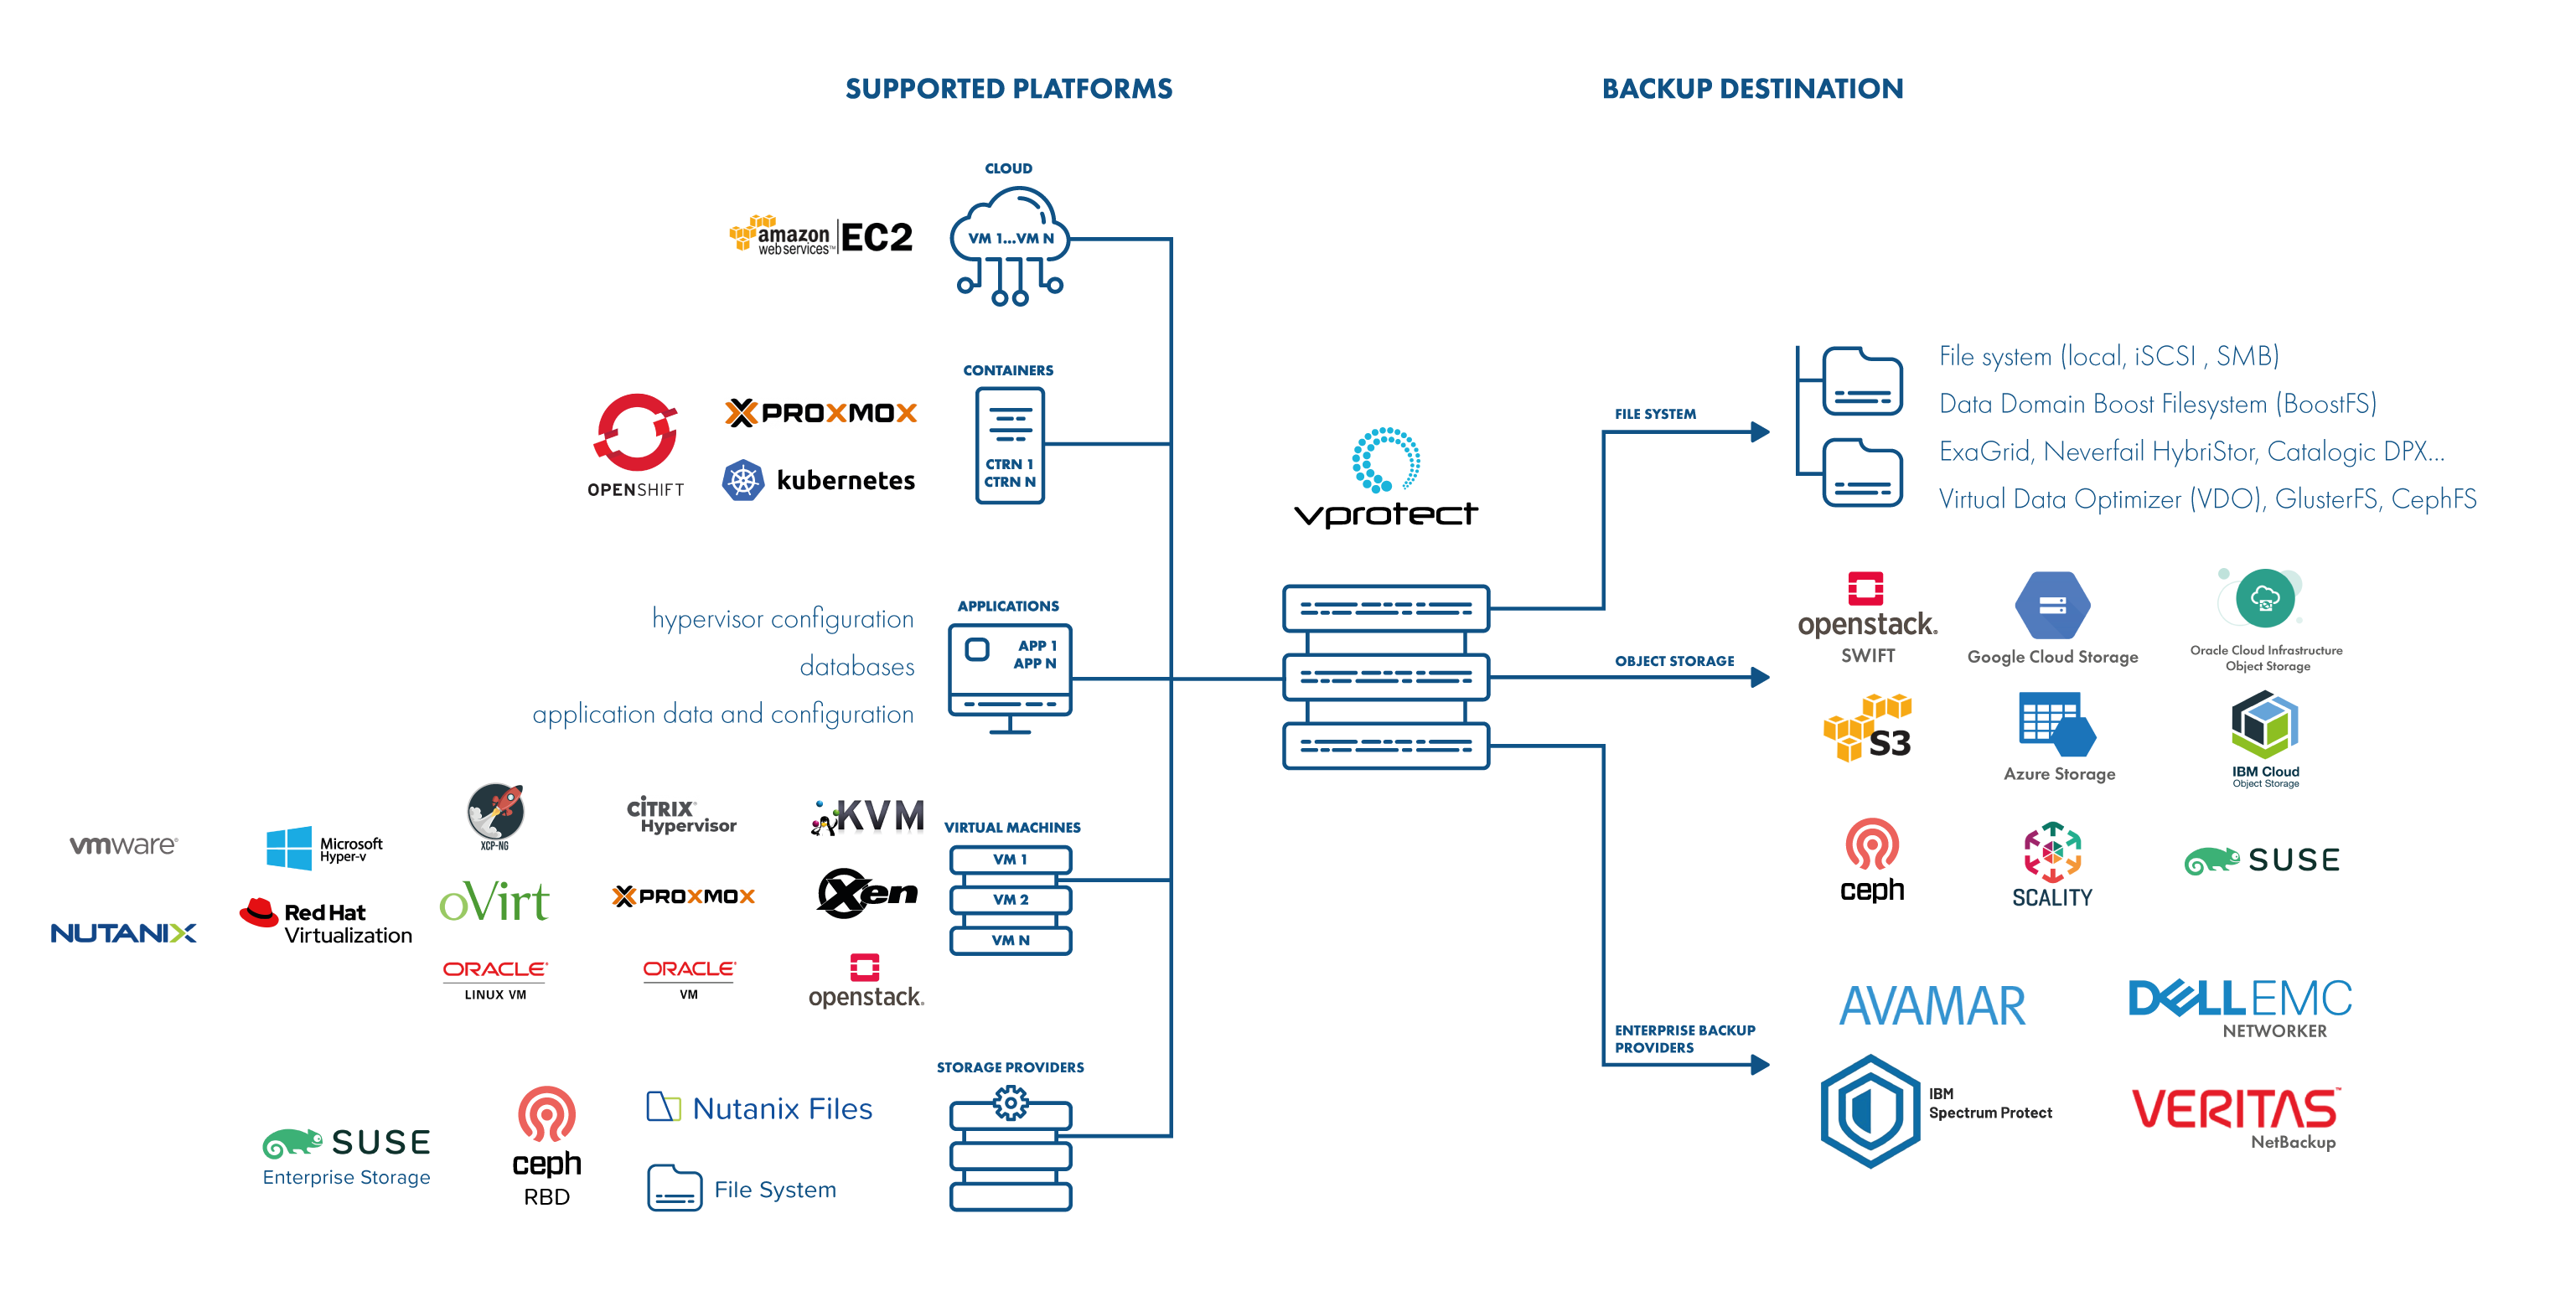 Data backup and recovery solution architecture - Storware vProtect 4.3 by Storware 2021